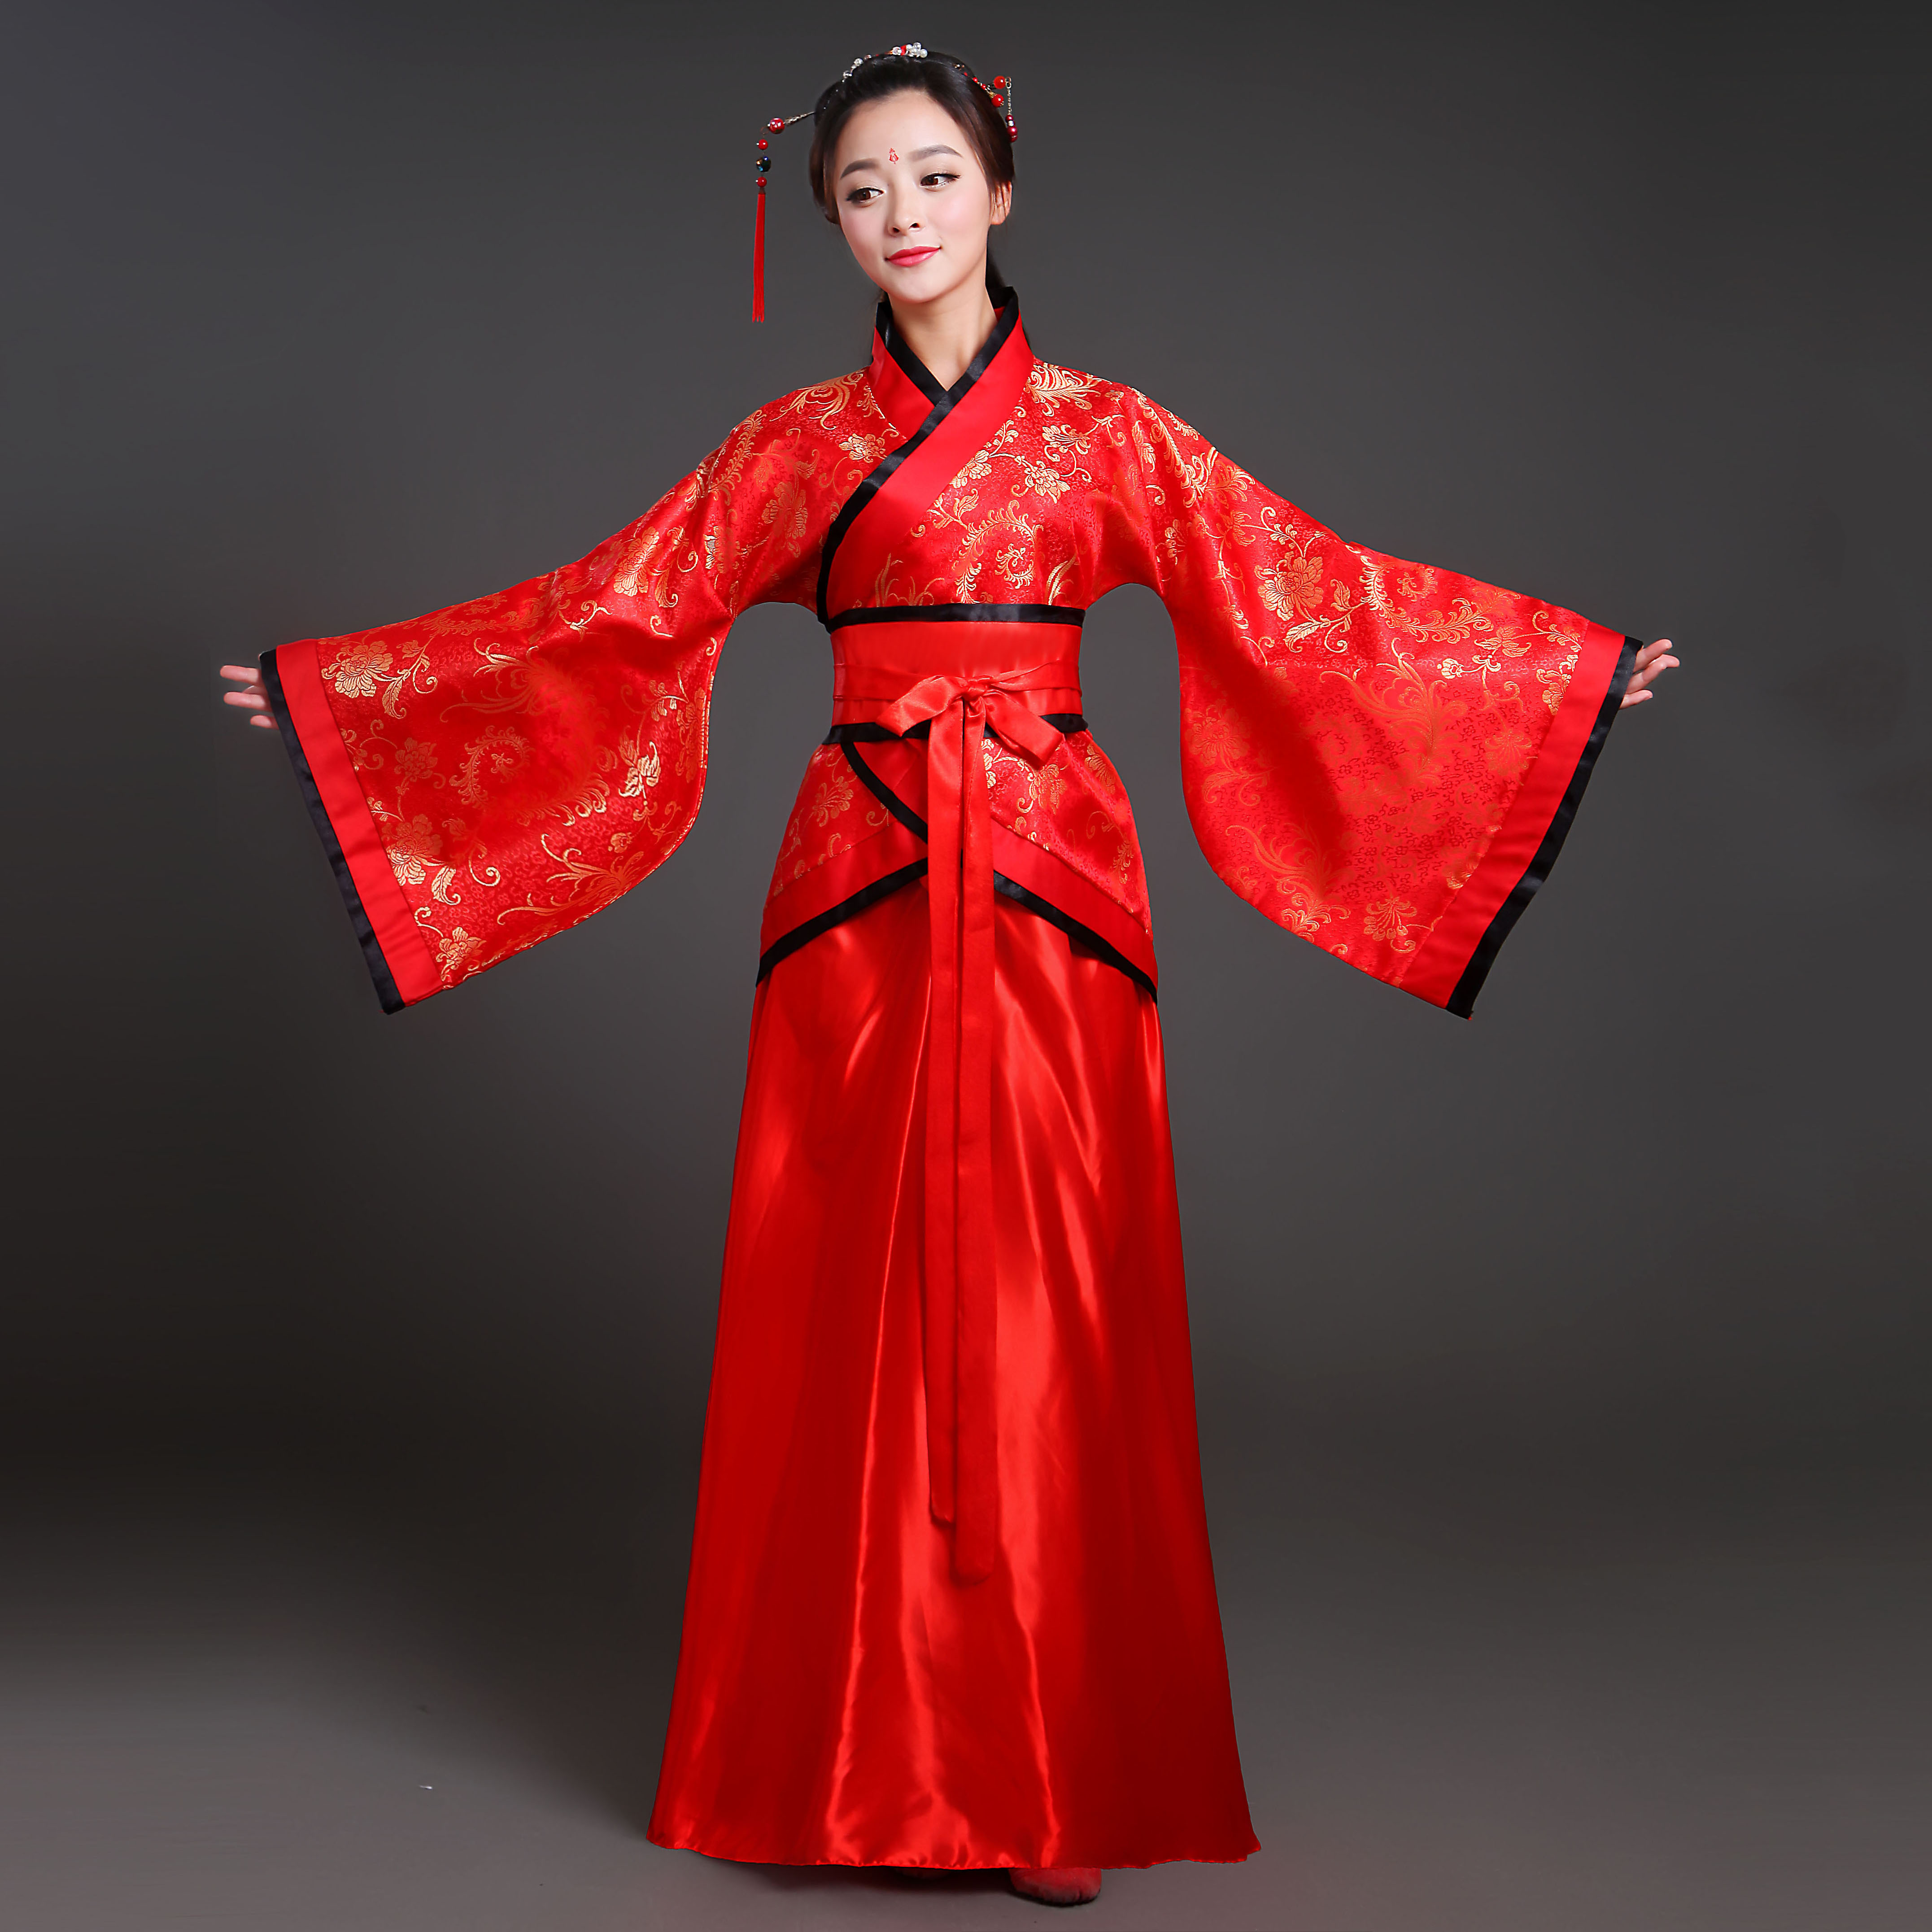 2019 Hanfu National Costume Ancient Chinese Cosplay Costume Ancient Chinese Hanfu Women Hanfu Clothes Lady Chinese Stage Dress